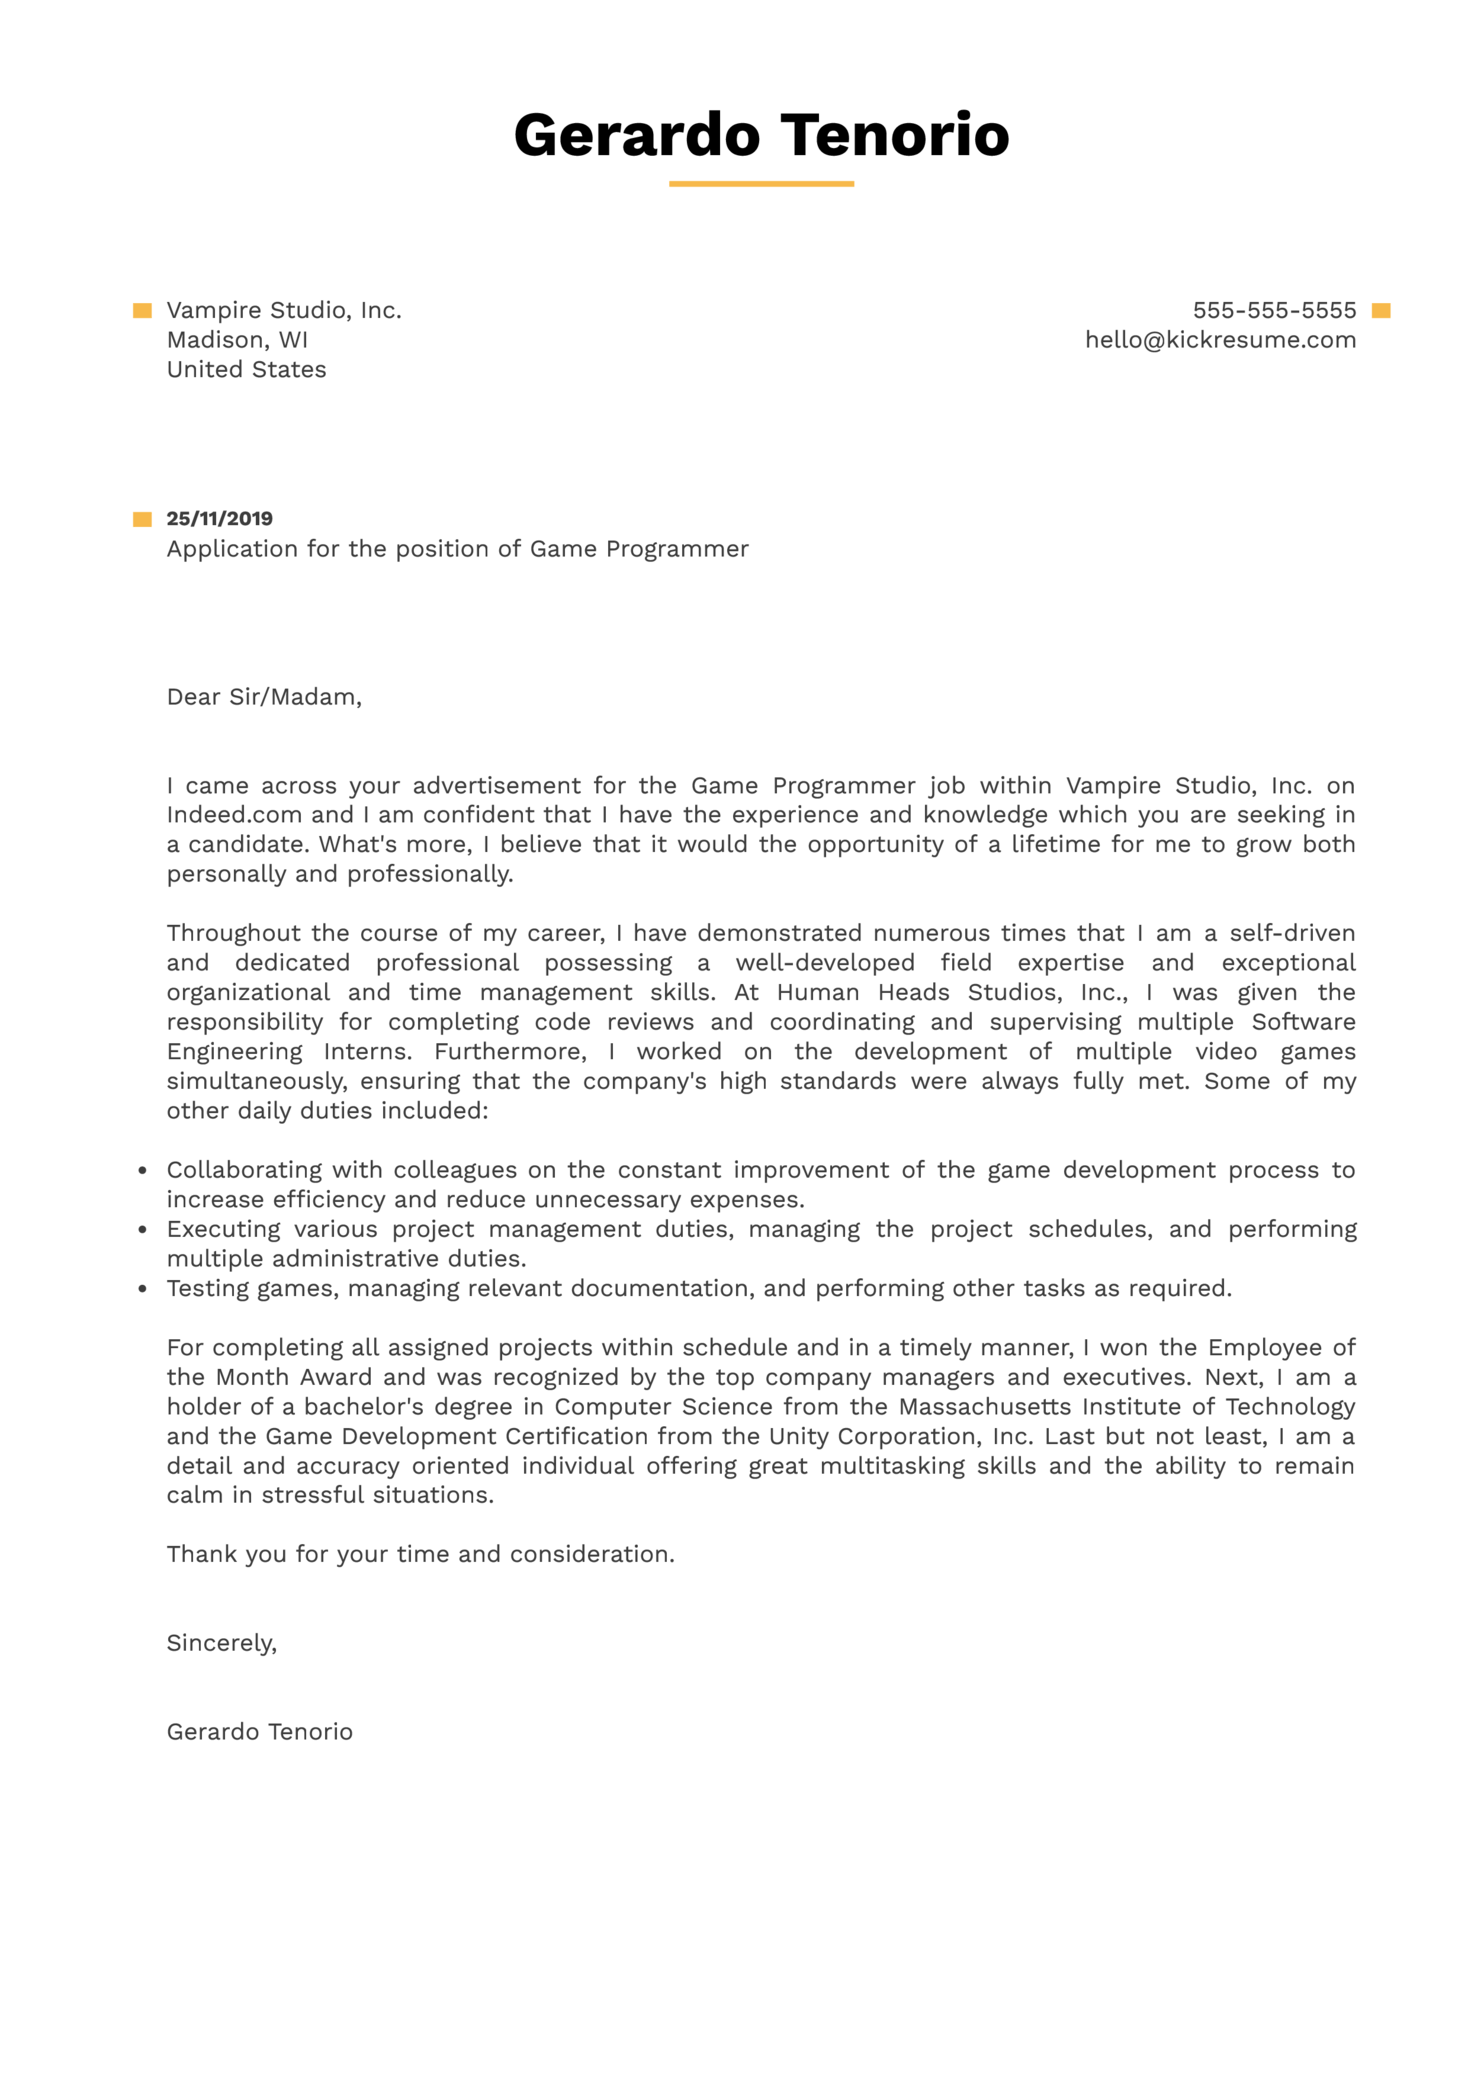 Game Programmer Cover Letter Example